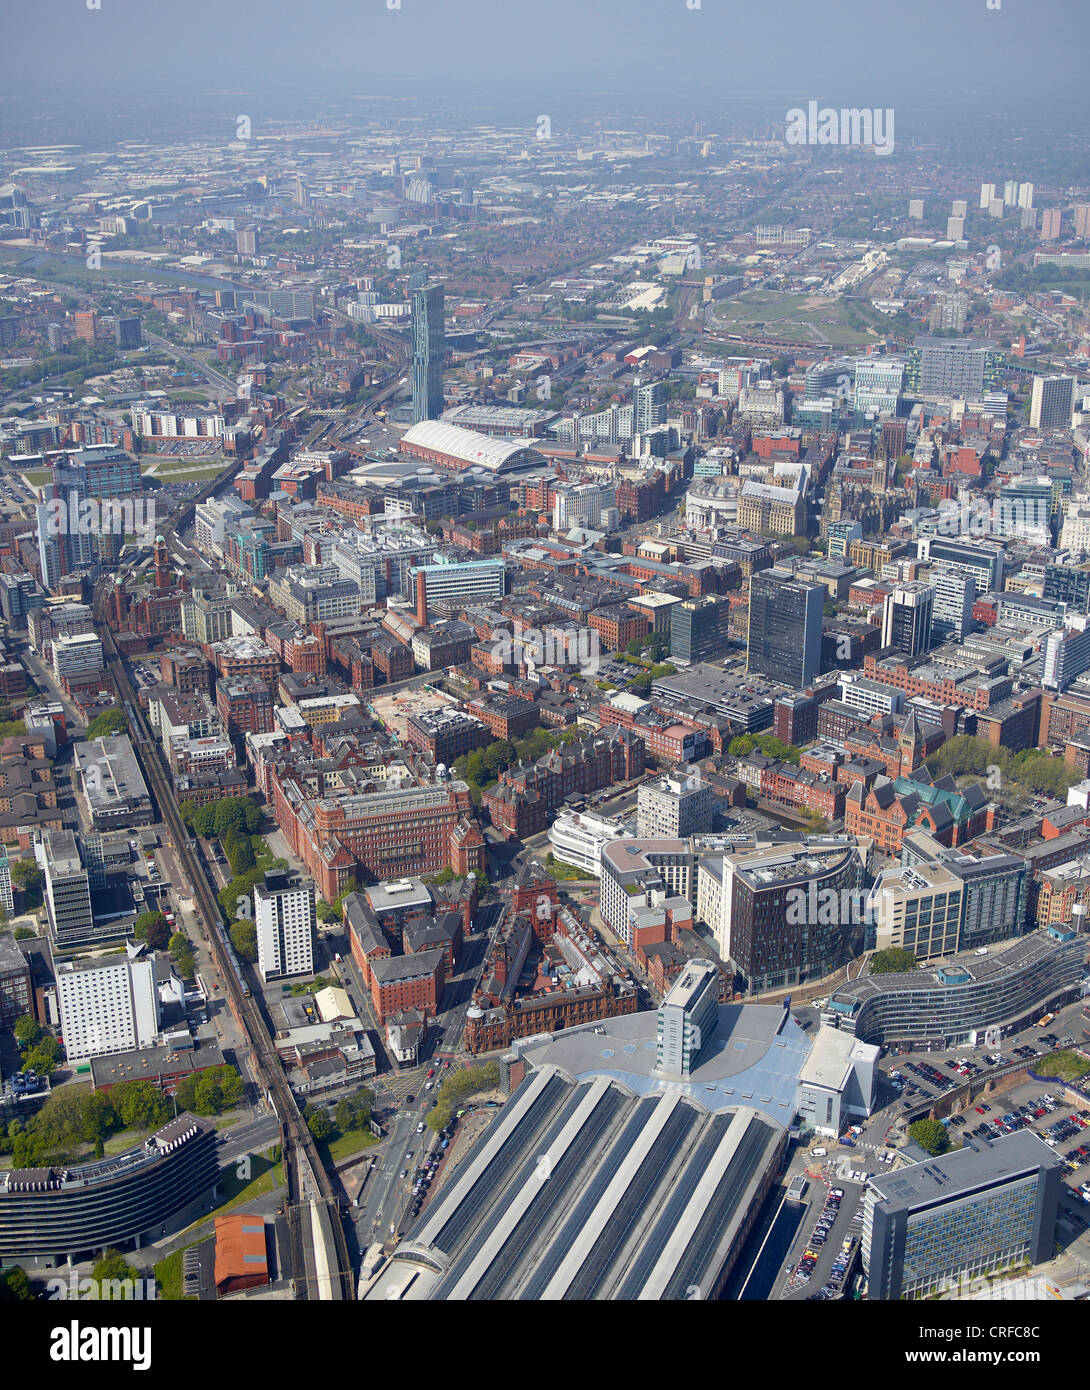 Manchester City Centre, from the air, North West England, Picadilly Station in the Foreground - Stock Image